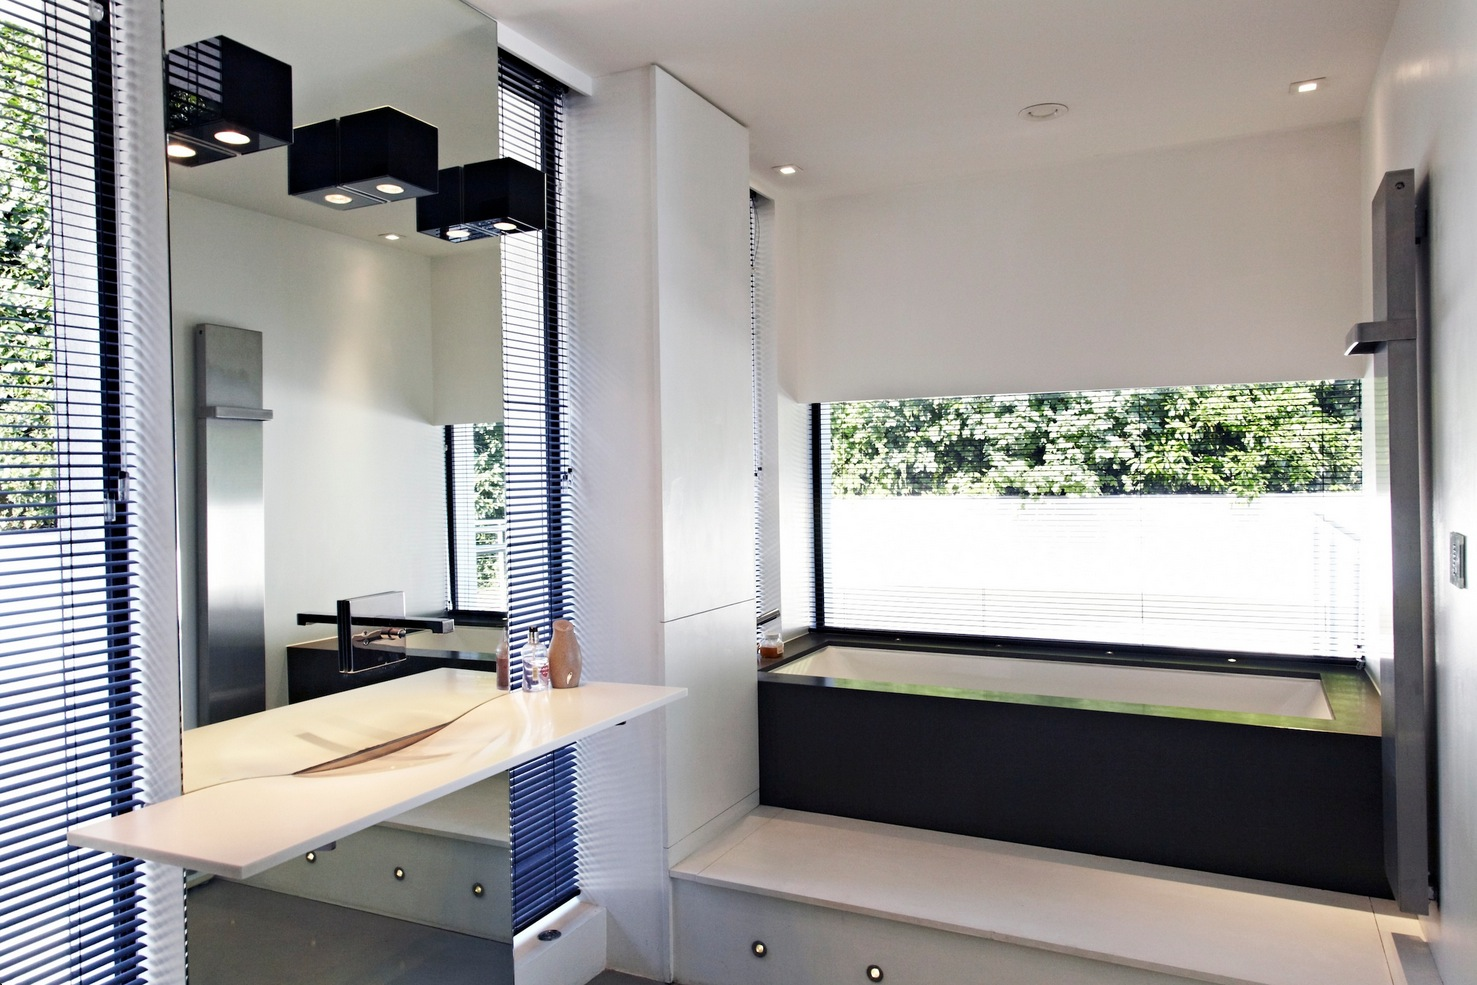 Bathroom Wall Mirrors: Contemporary Home Open To Panoramic Views